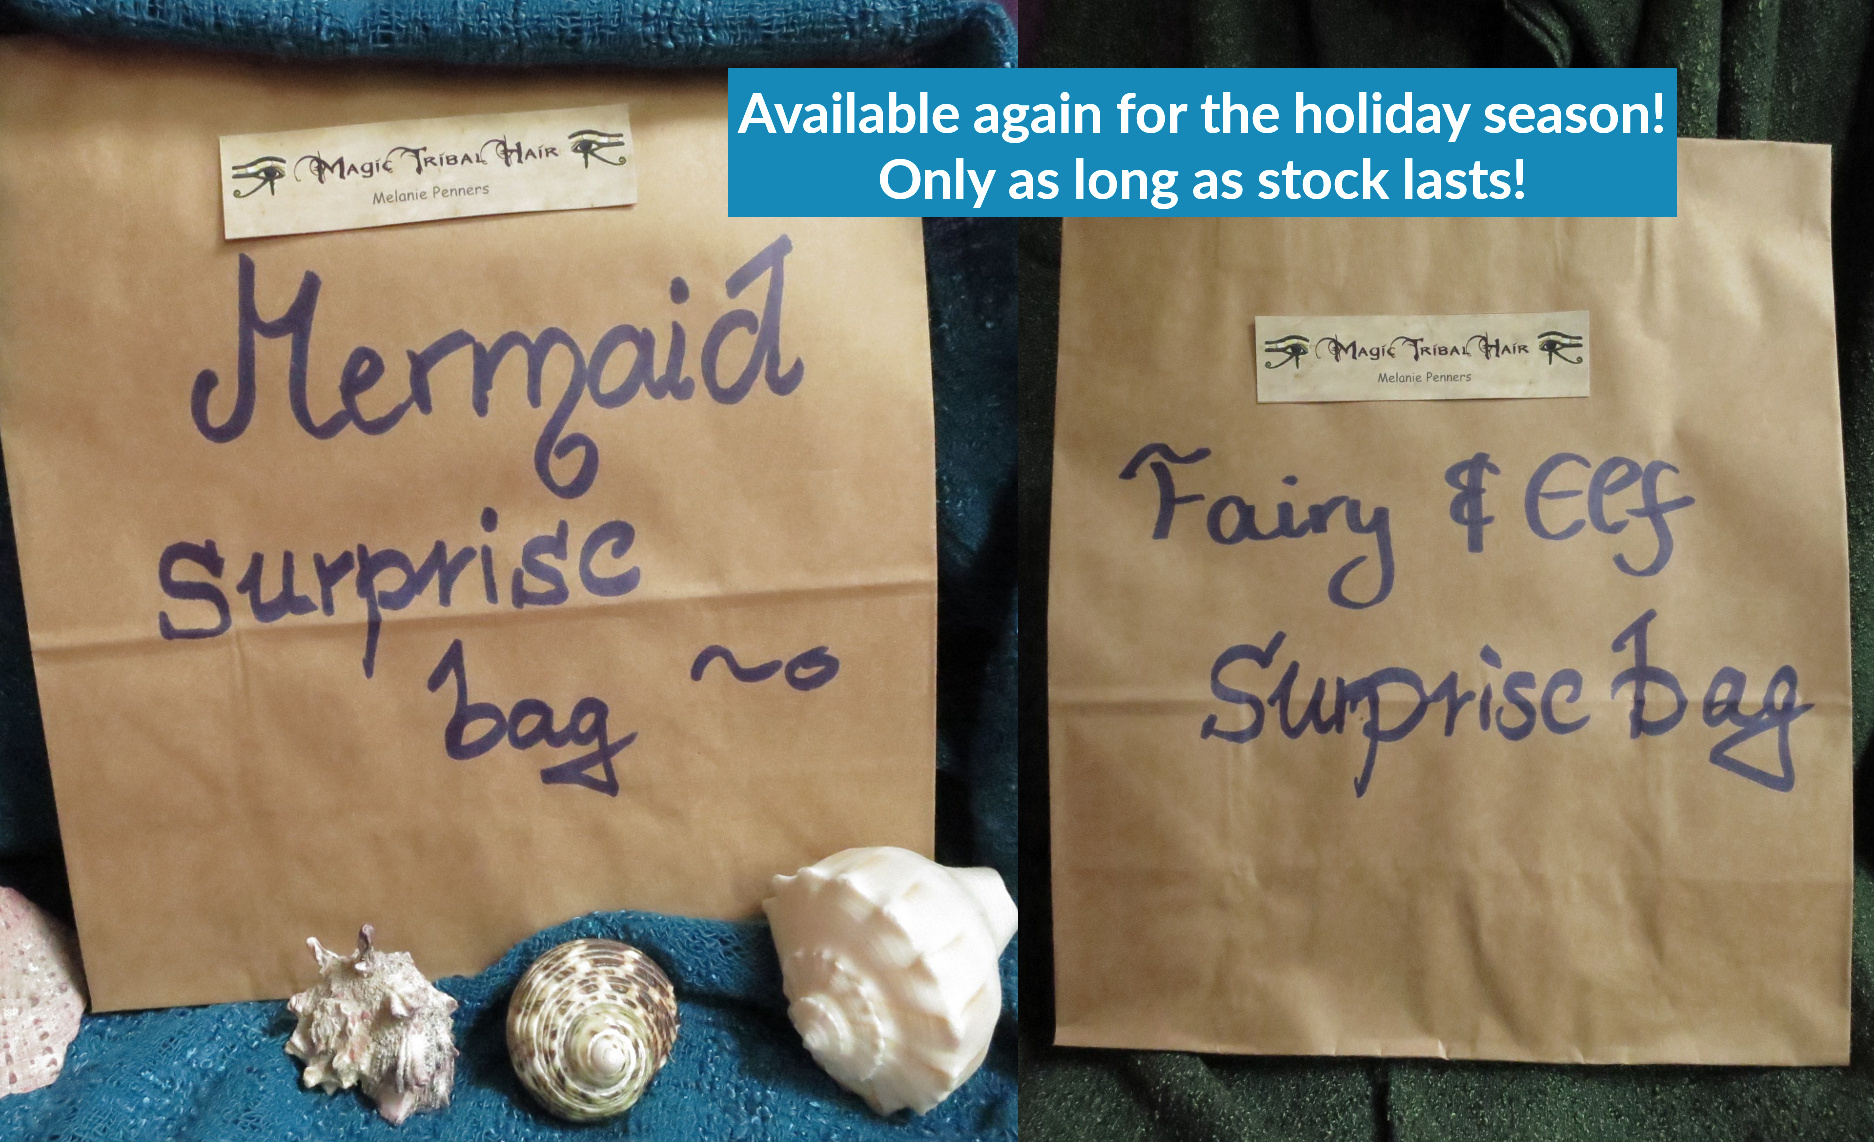 All surprise bags available again!